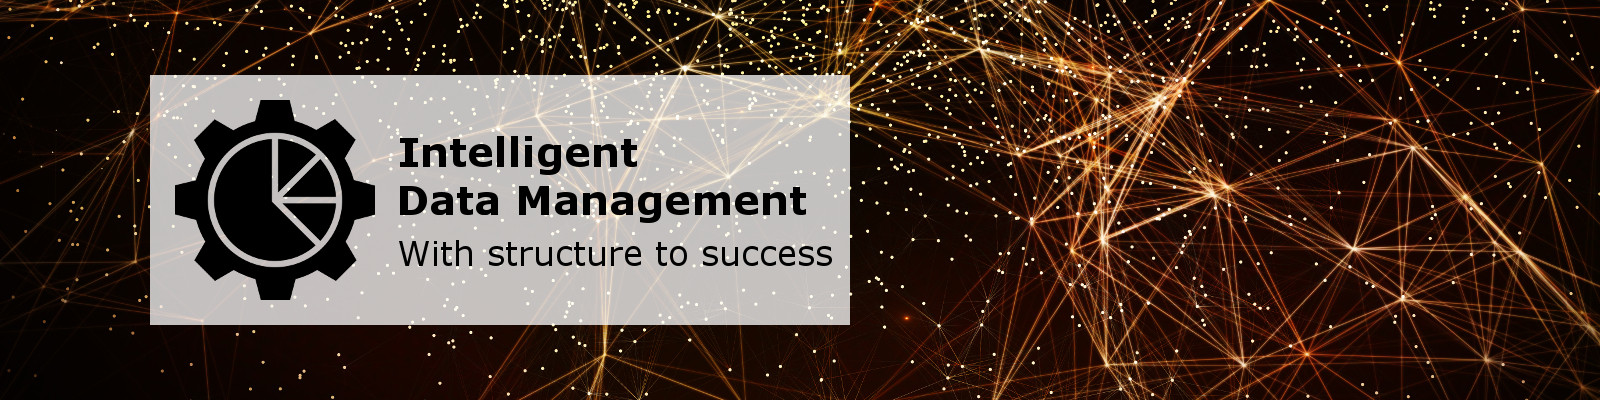 Intelligent Data Management Banner